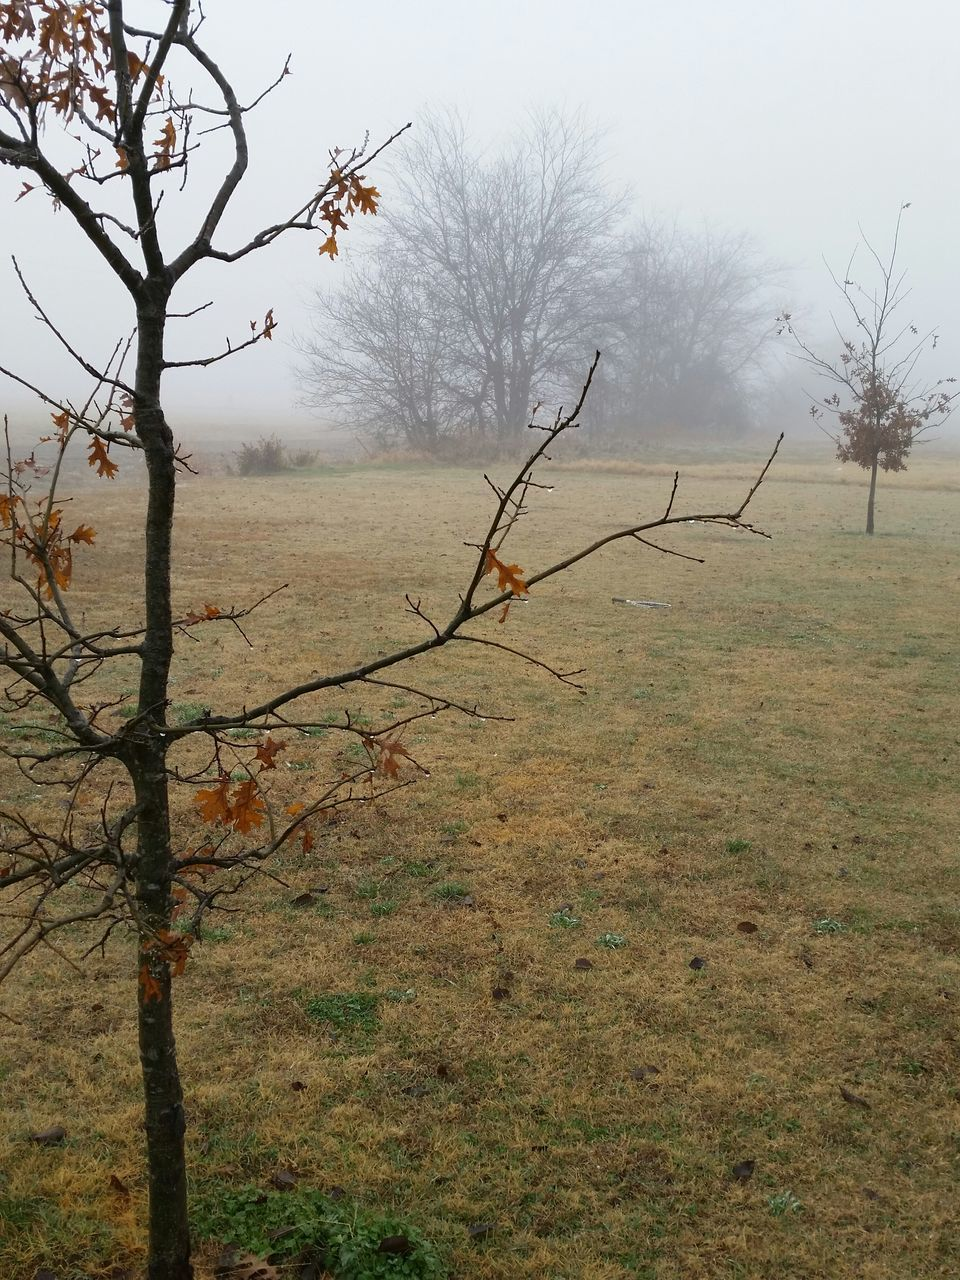 Grassy Landscape In Foggy Weather